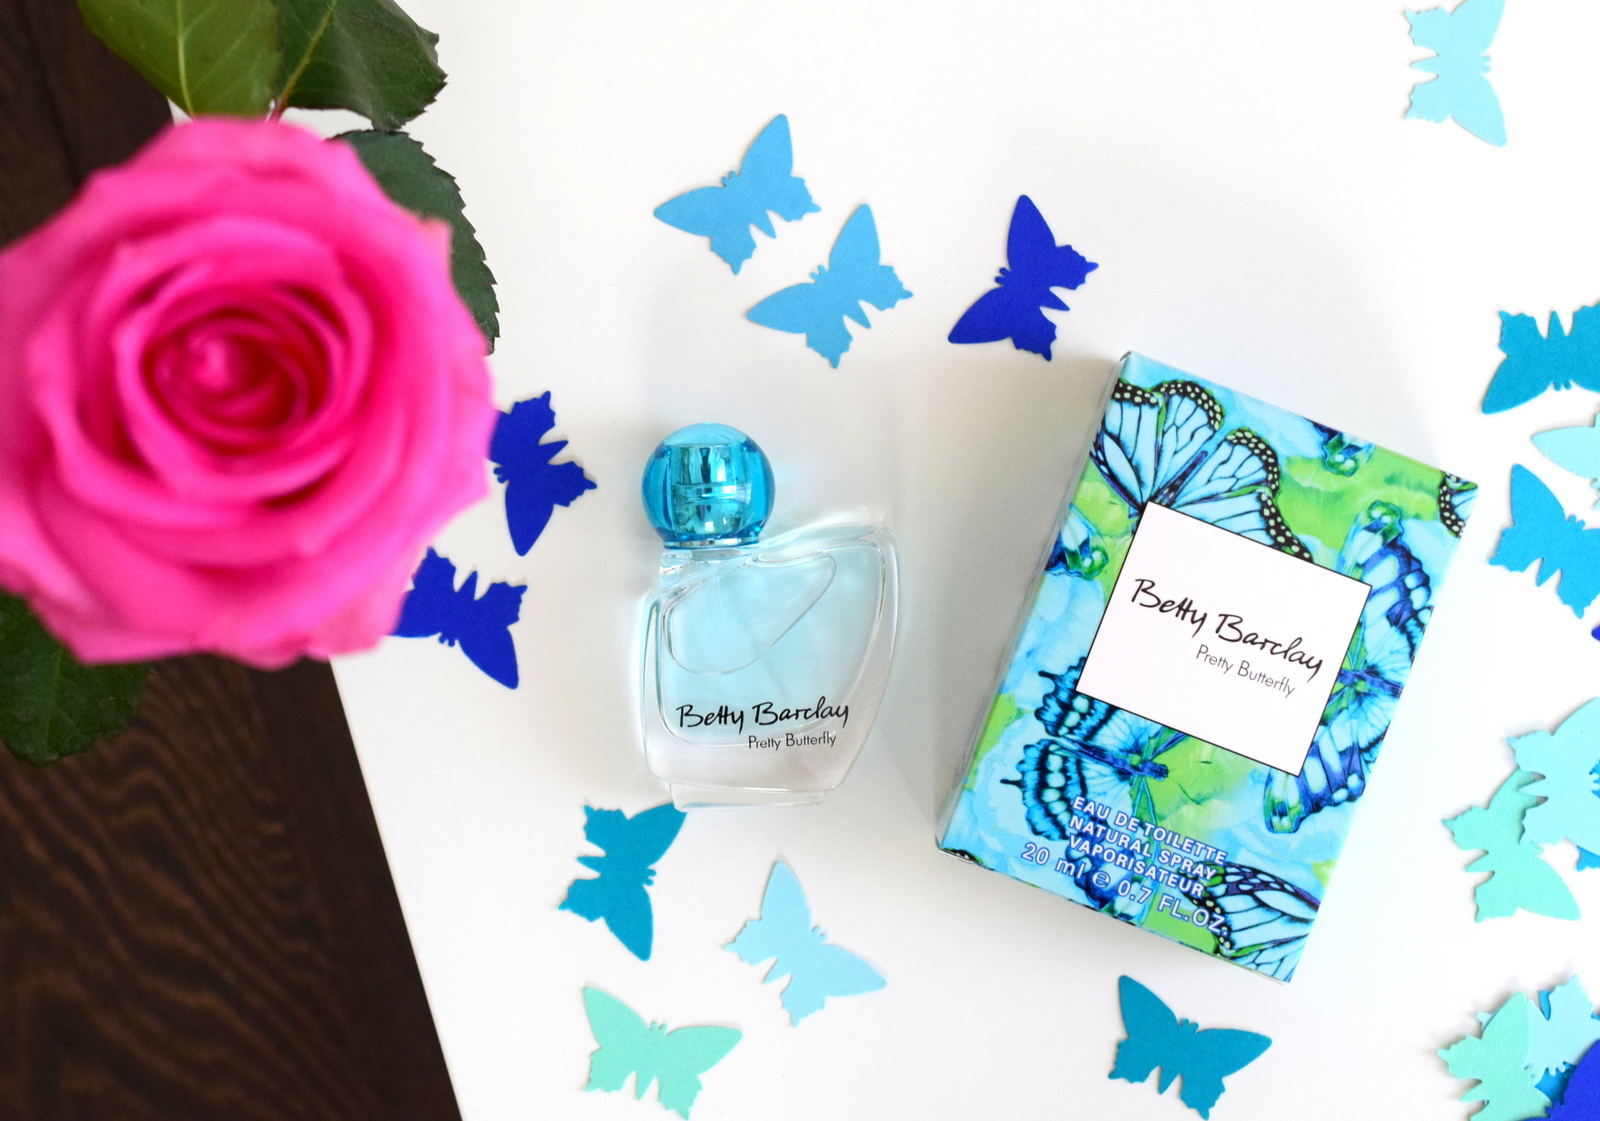 Betty Barclay Pretty Butterfly Review